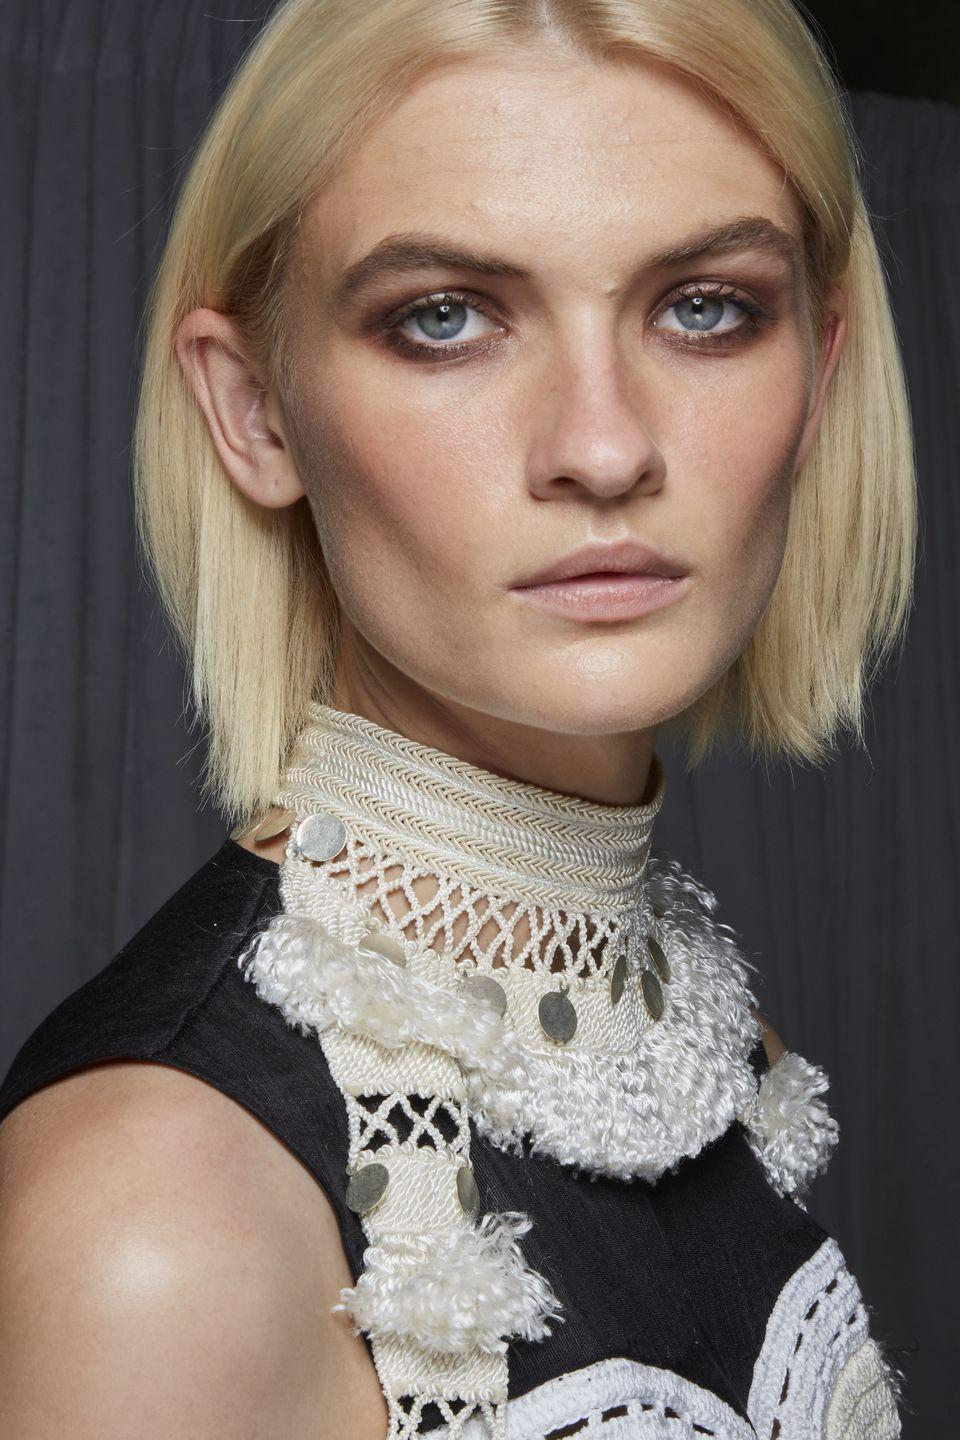 """<p>Love it or loathe it, powdery skin has also had its runway comeback this season. Light and shadow were explored at the Altuzarra and Dundas shows as cheekbones were defined with heavy contour set upon a matte base. Meanwhile at Jonathan Simkhai, Rodarte and Coach, the model's complexions were left flat and doll-like with a smooth finish.</p><p><strong>Get the look: </strong>Chanel Ultra Le Teint Velvet, £40</p><p> <a class=""""link rapid-noclick-resp"""" href=""""https://www.johnlewis.com/chanel-ultra-le-teint-velvet-ultra-light-and-longwearing-formula-blurring-matte-finish-perfect-natural-complexion/p4417254"""" rel=""""nofollow noopener"""" target=""""_blank"""" data-ylk=""""slk:SHOP NOW"""">SHOP NOW</a></p>"""